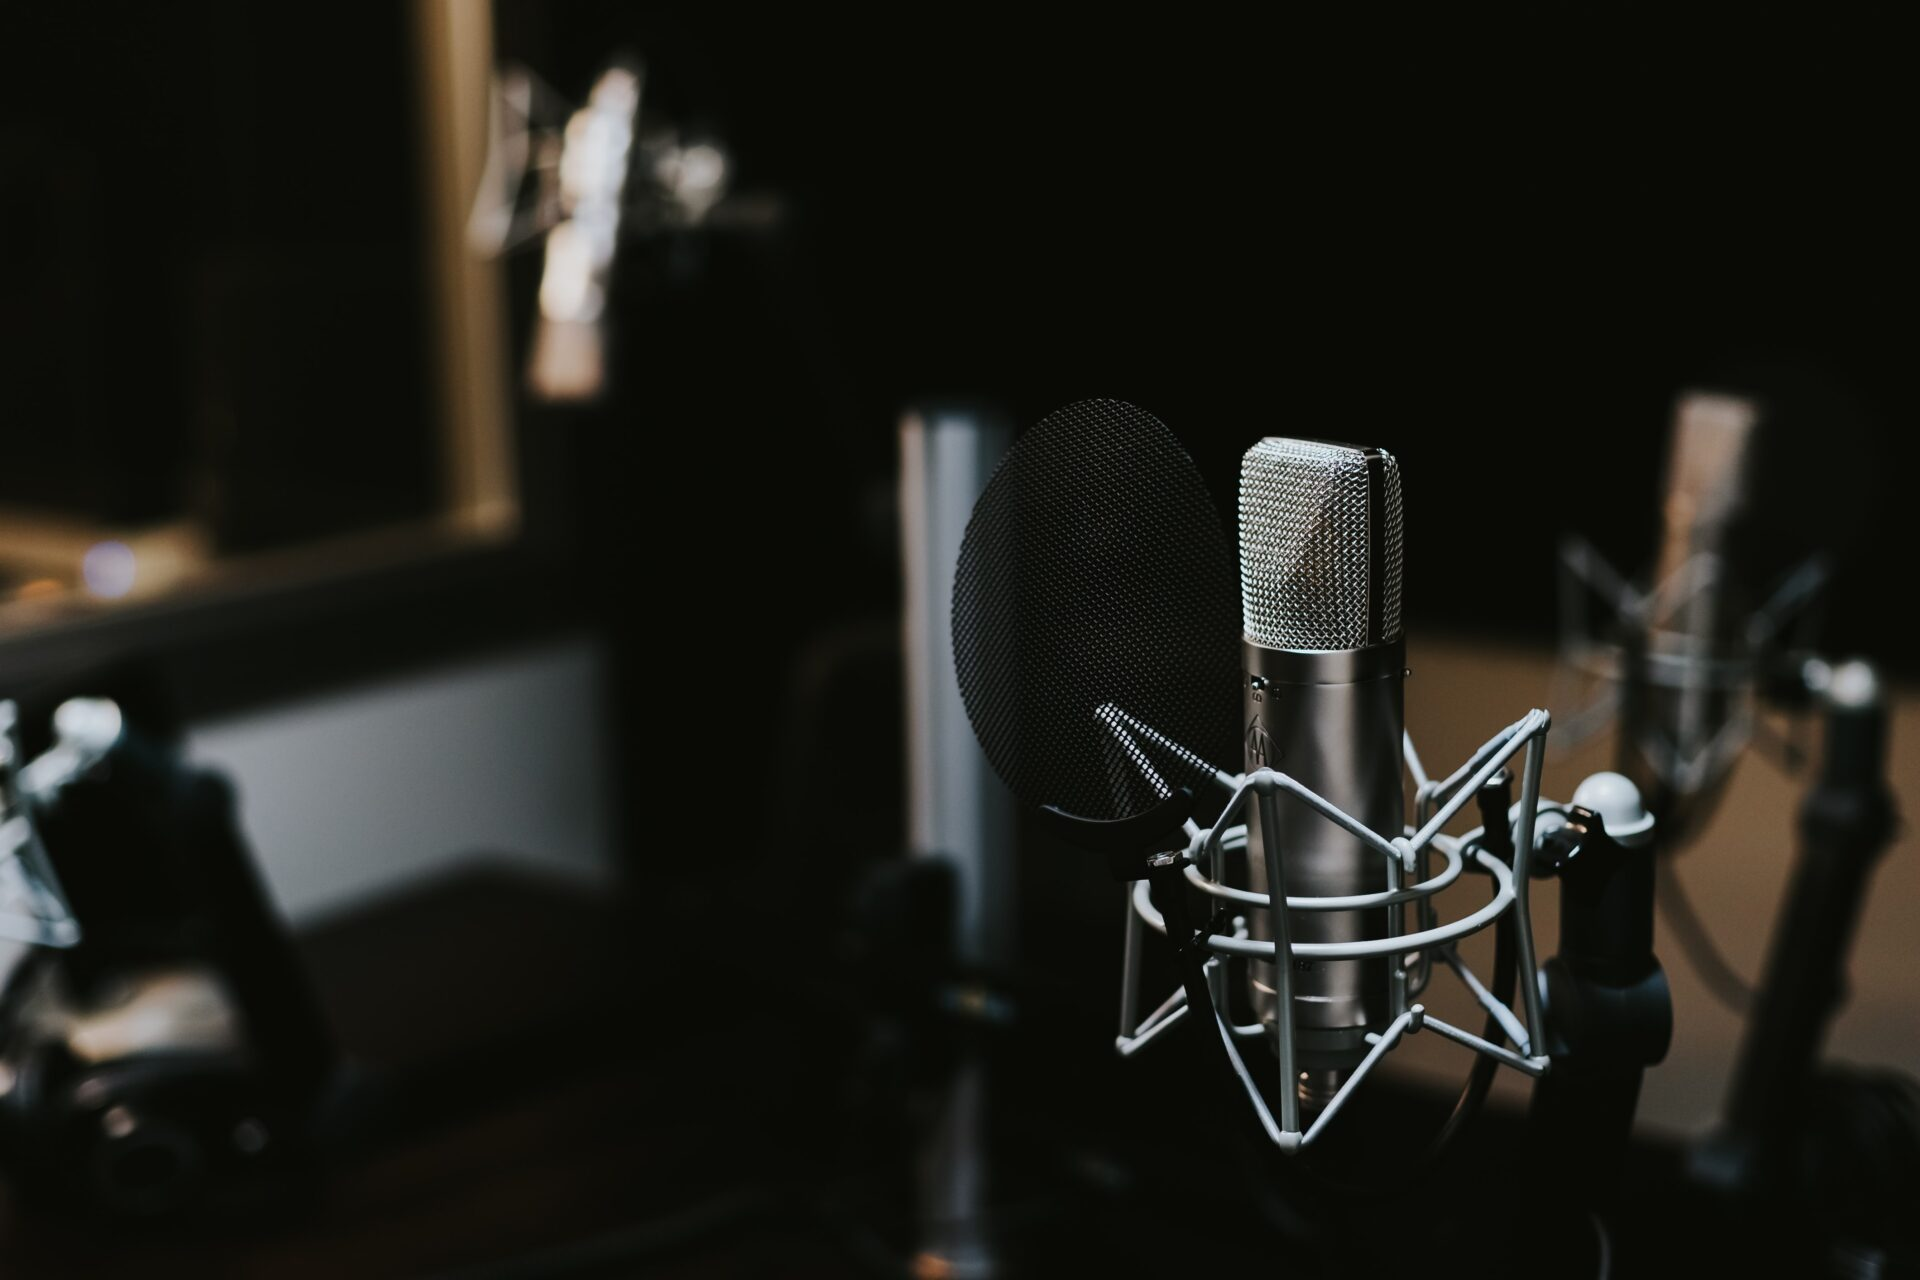 Podcast Measurement Is Gaining Traction